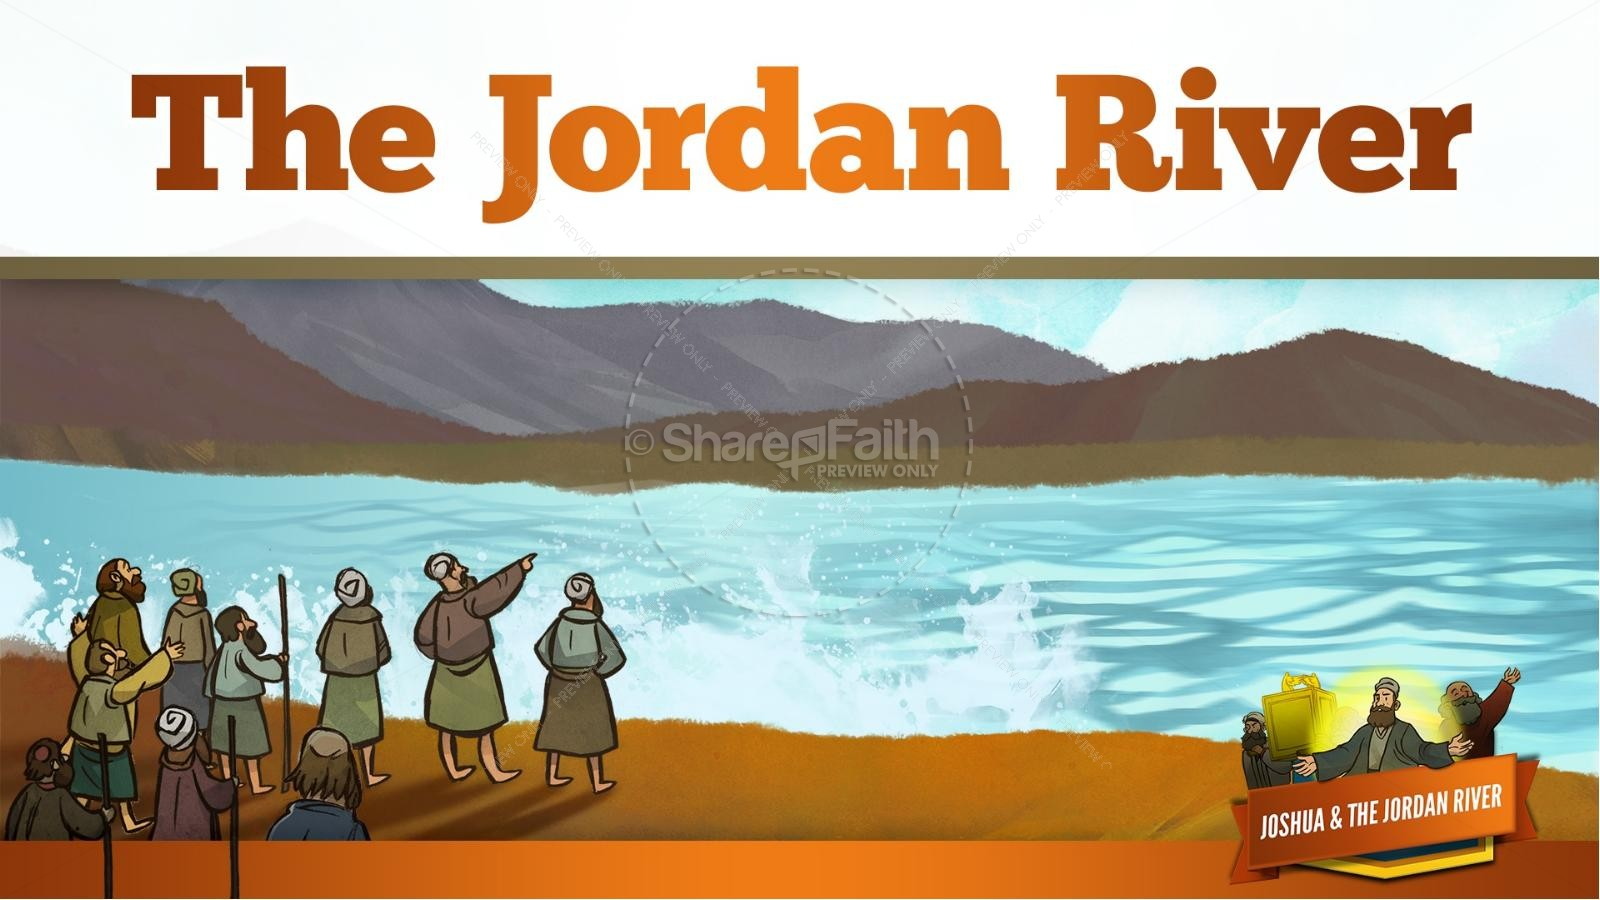 Joshua 3 Crossing the Jordan River Kids Bible Story.